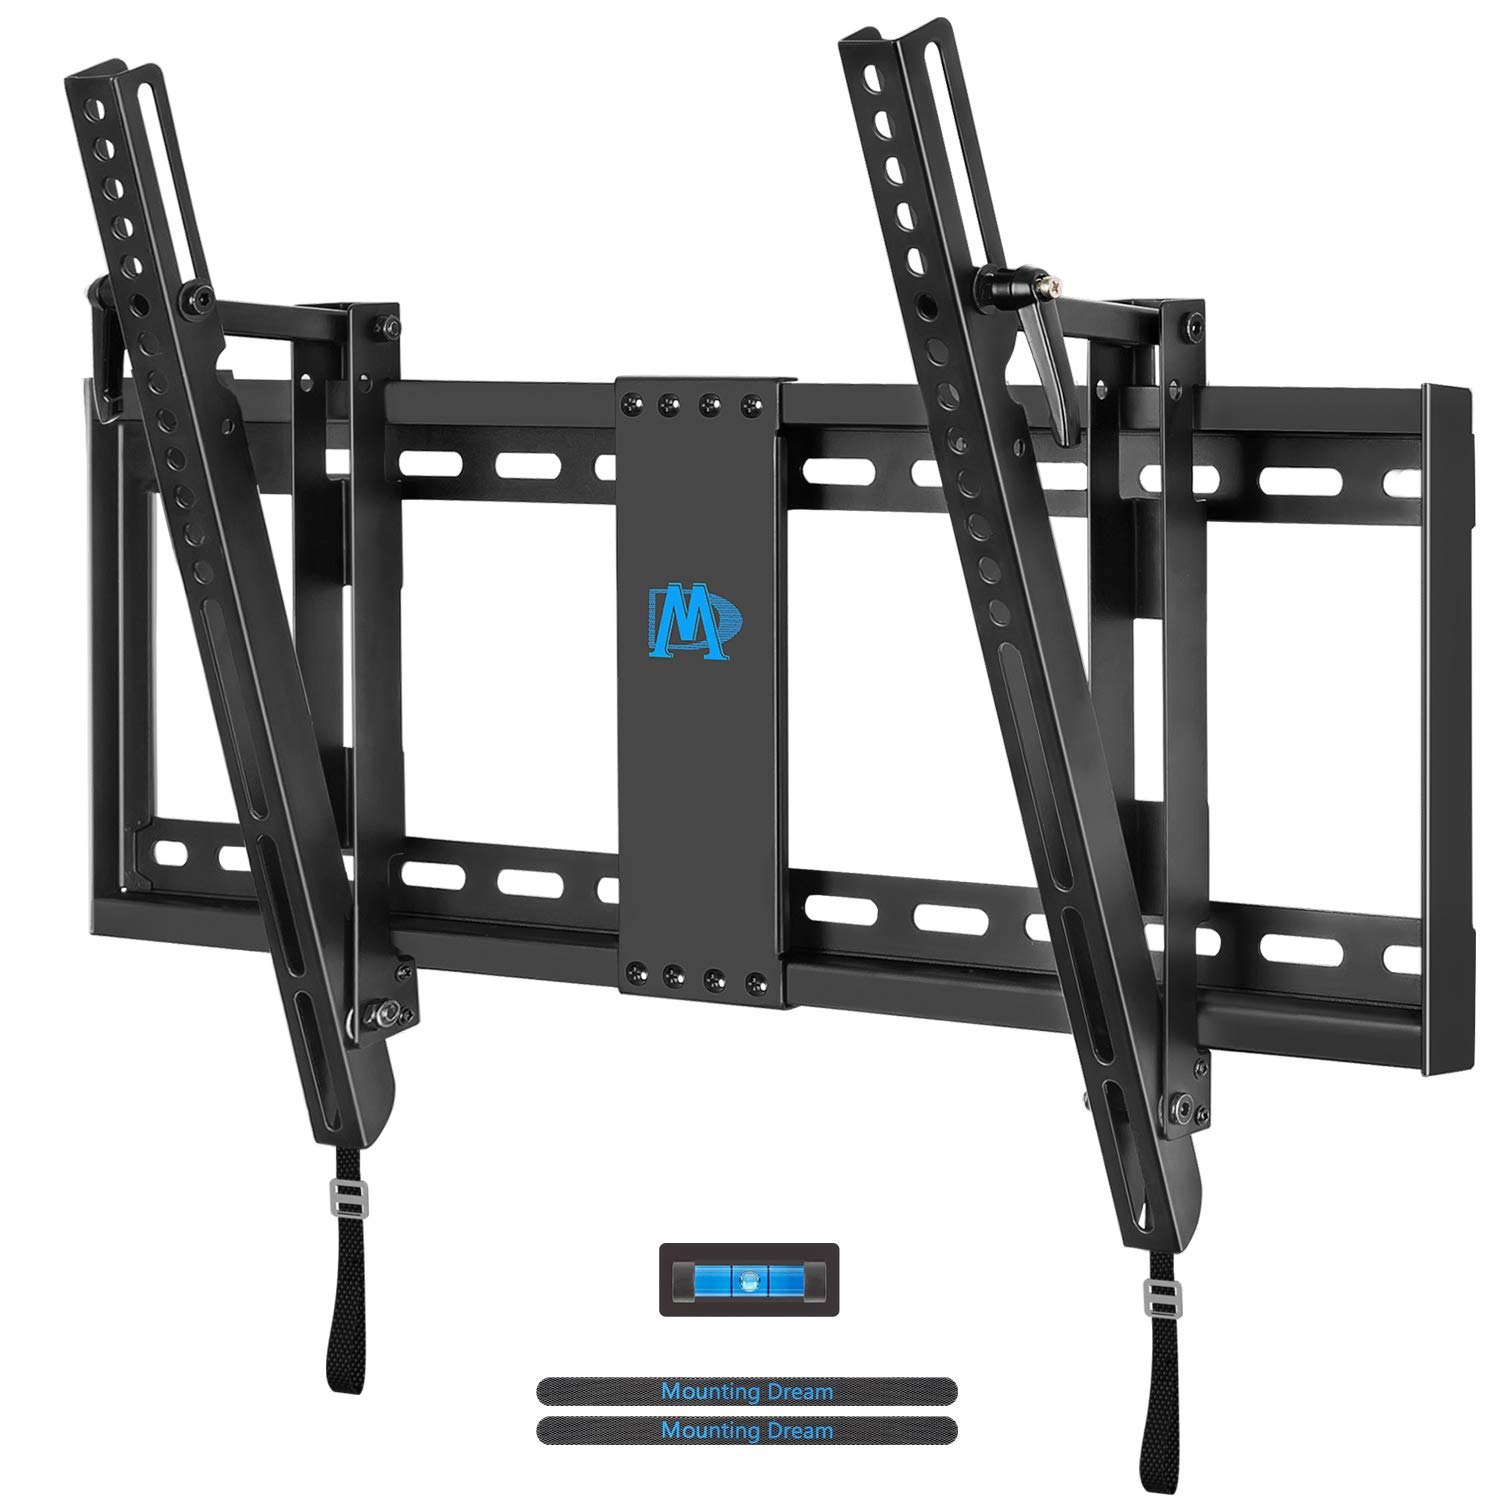 Mounting Dream Tilt TV Wall Mount TV Bracket for Most of 42-70 Inches TV, TV Mount Tilt up to 20 Degrees with VESA 200x100 to 600x400mm and Loading 132 lbs, Fits 16'', 18'', 24'' Studs MD2165-LK by Mounting Dream